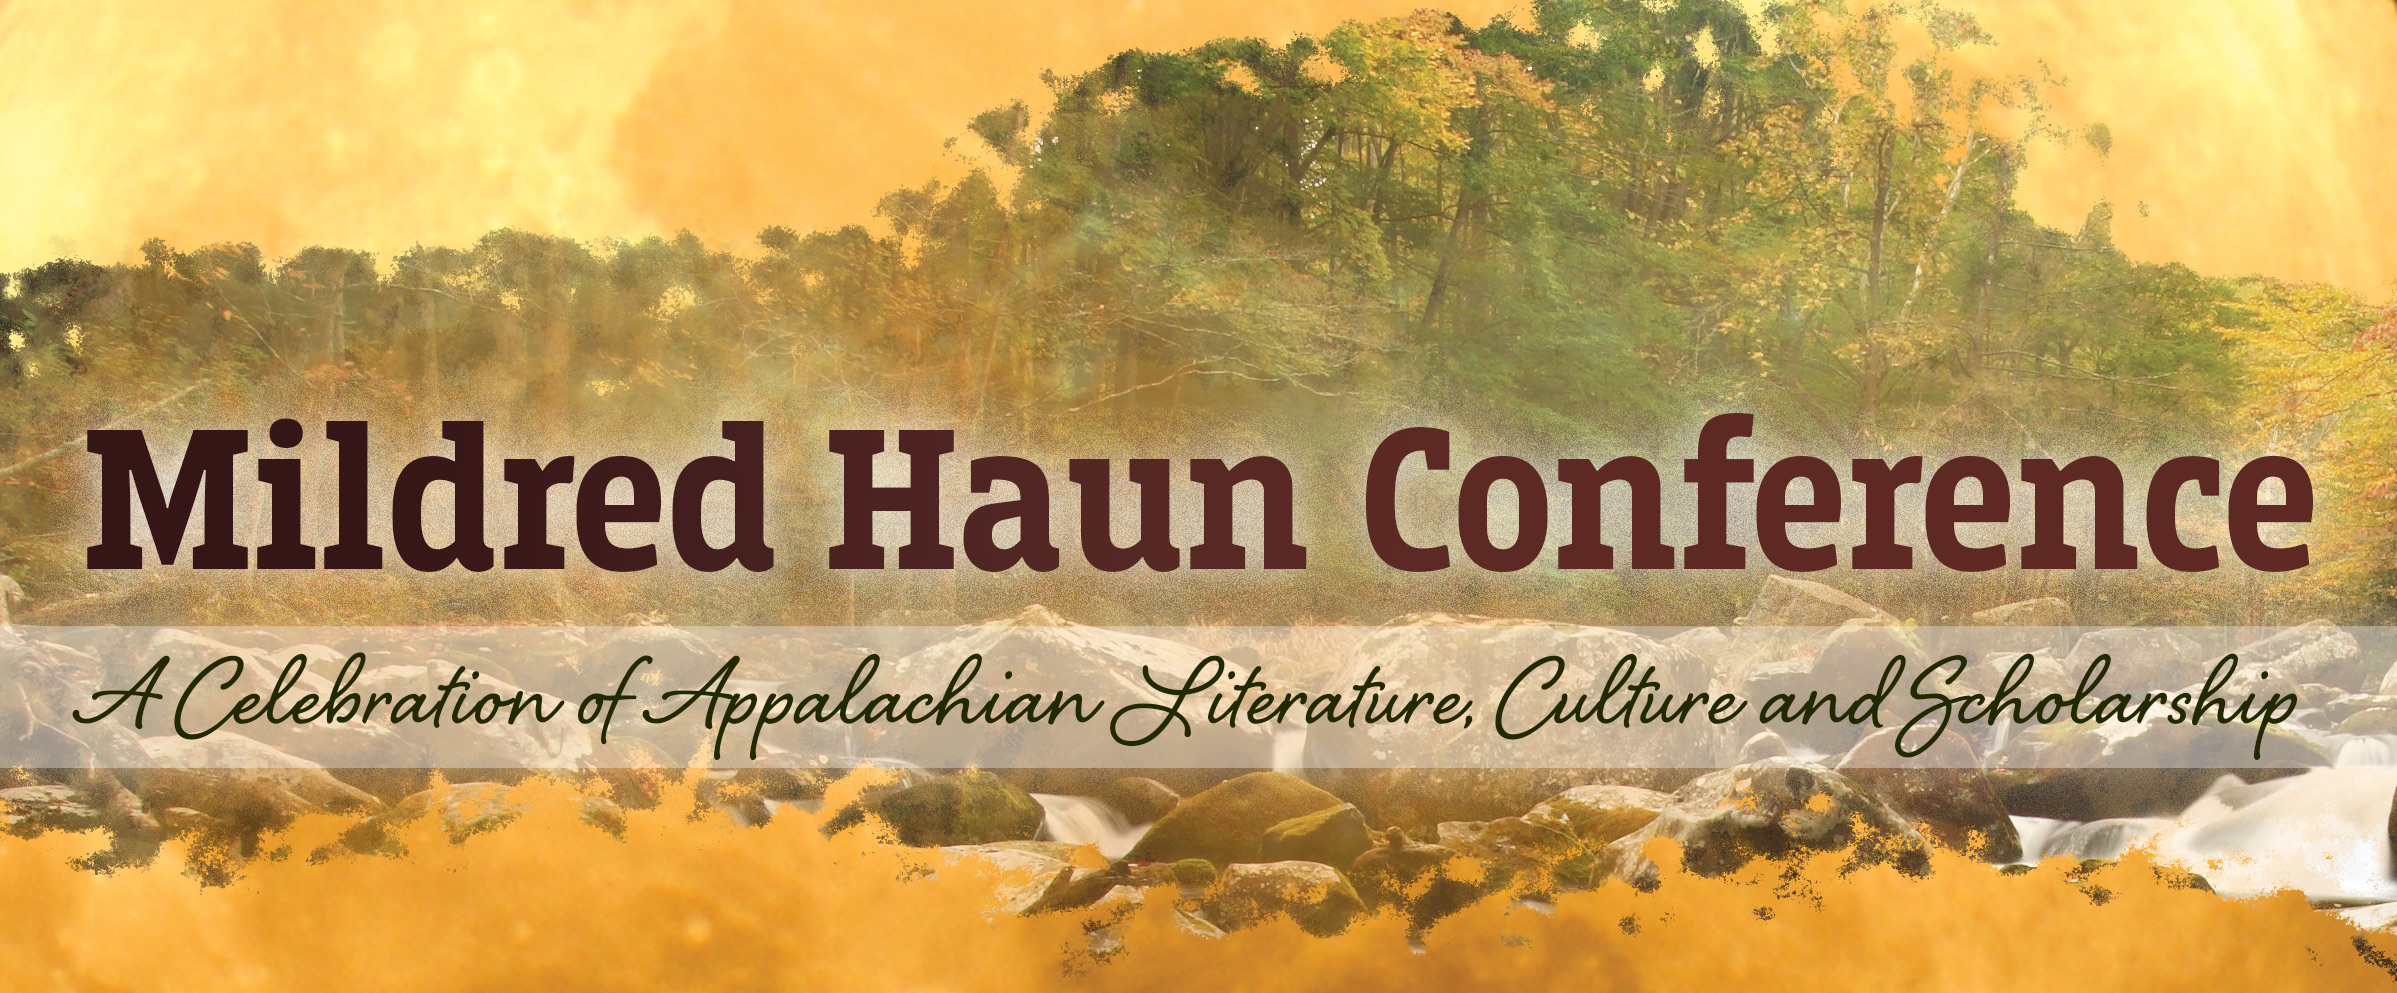 Mildred Haun Conference